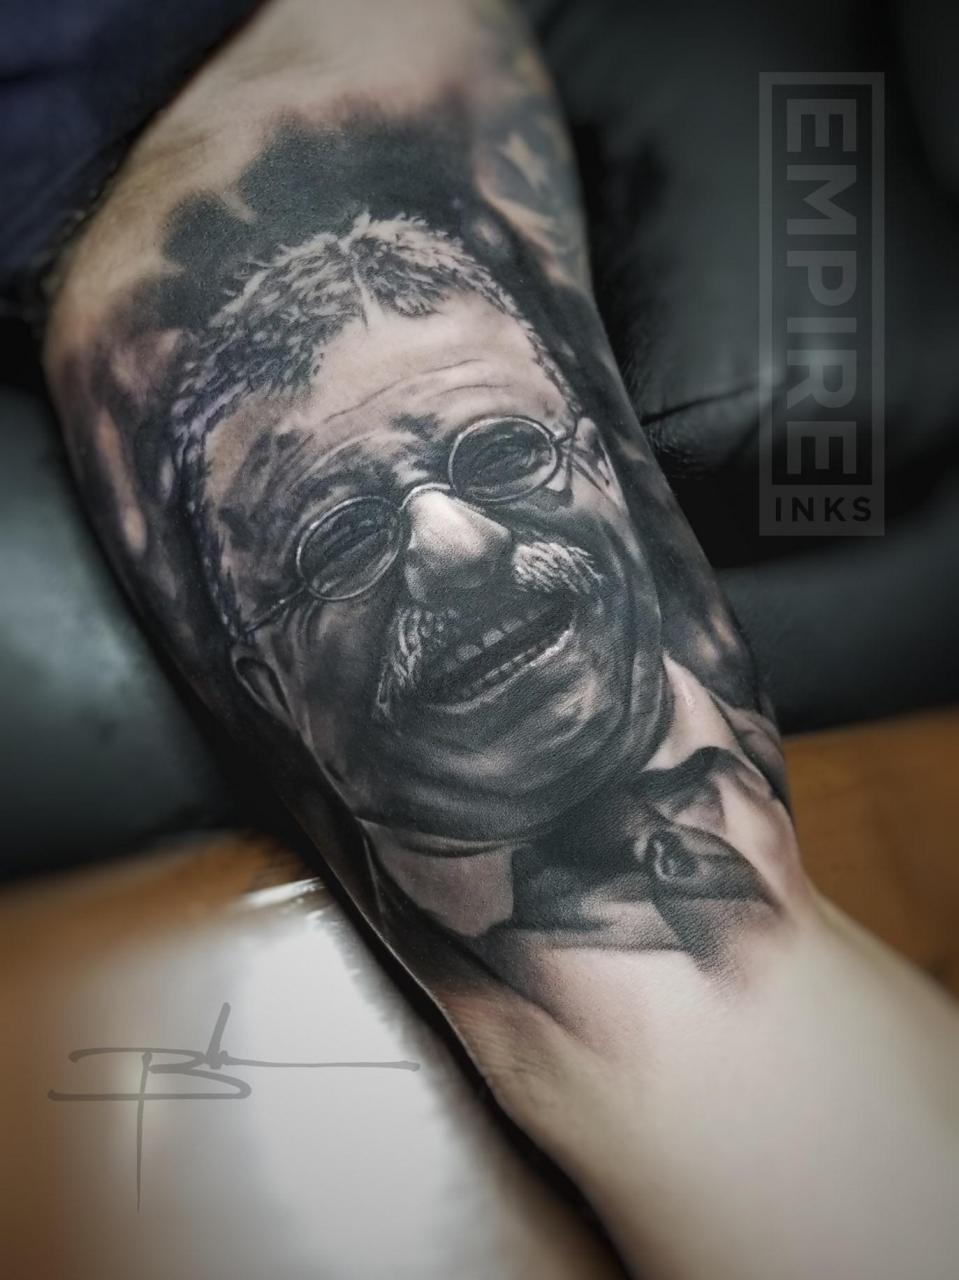 Teddy Roosevelt portrait, done by Brandon Evans, Revolution Ink IG @revcrew01